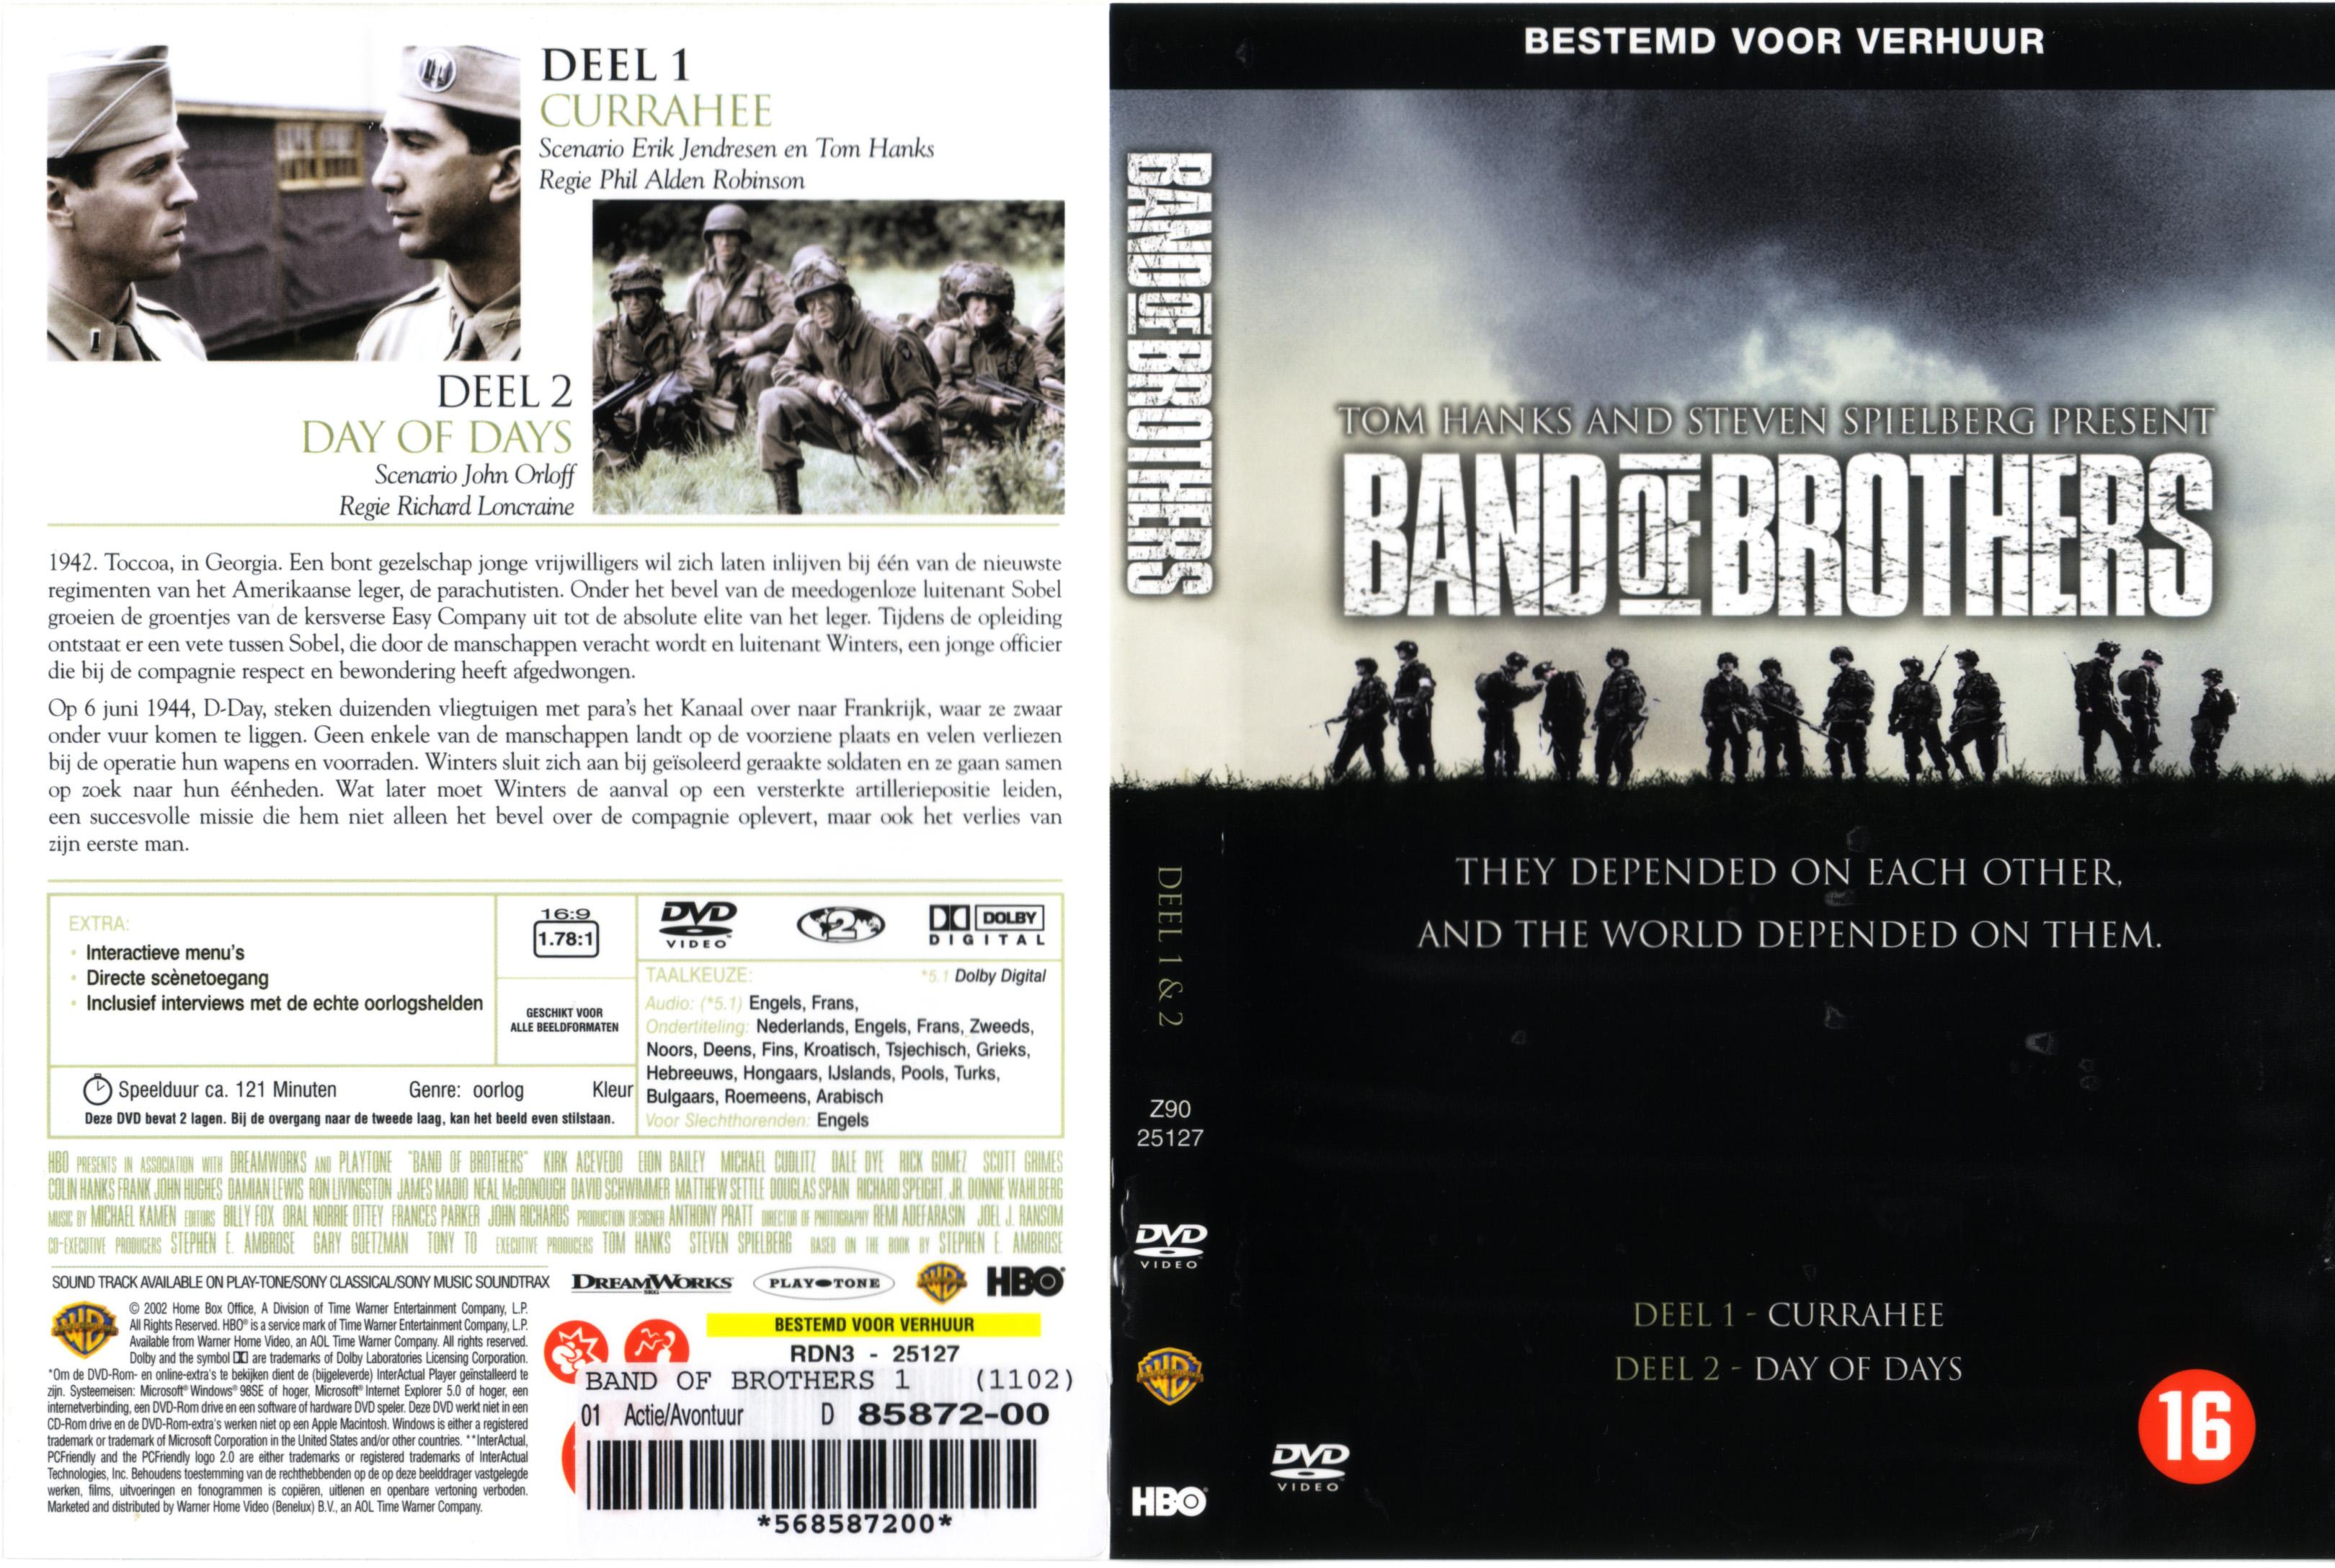 Band of brothers disc 1